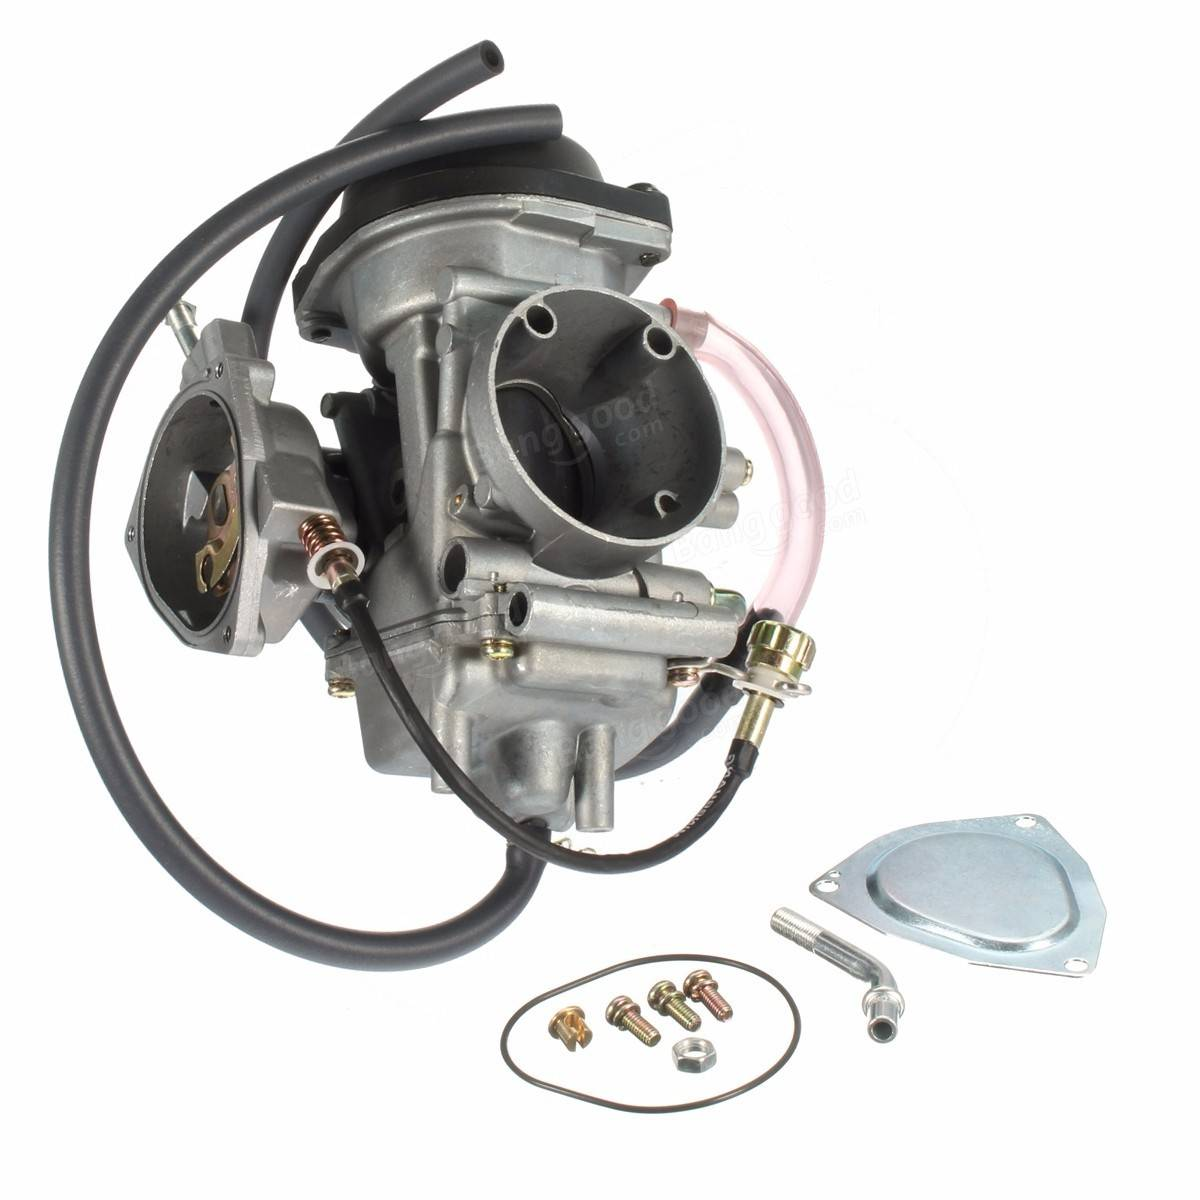 Yamaha Raptor Carburetor For Sale